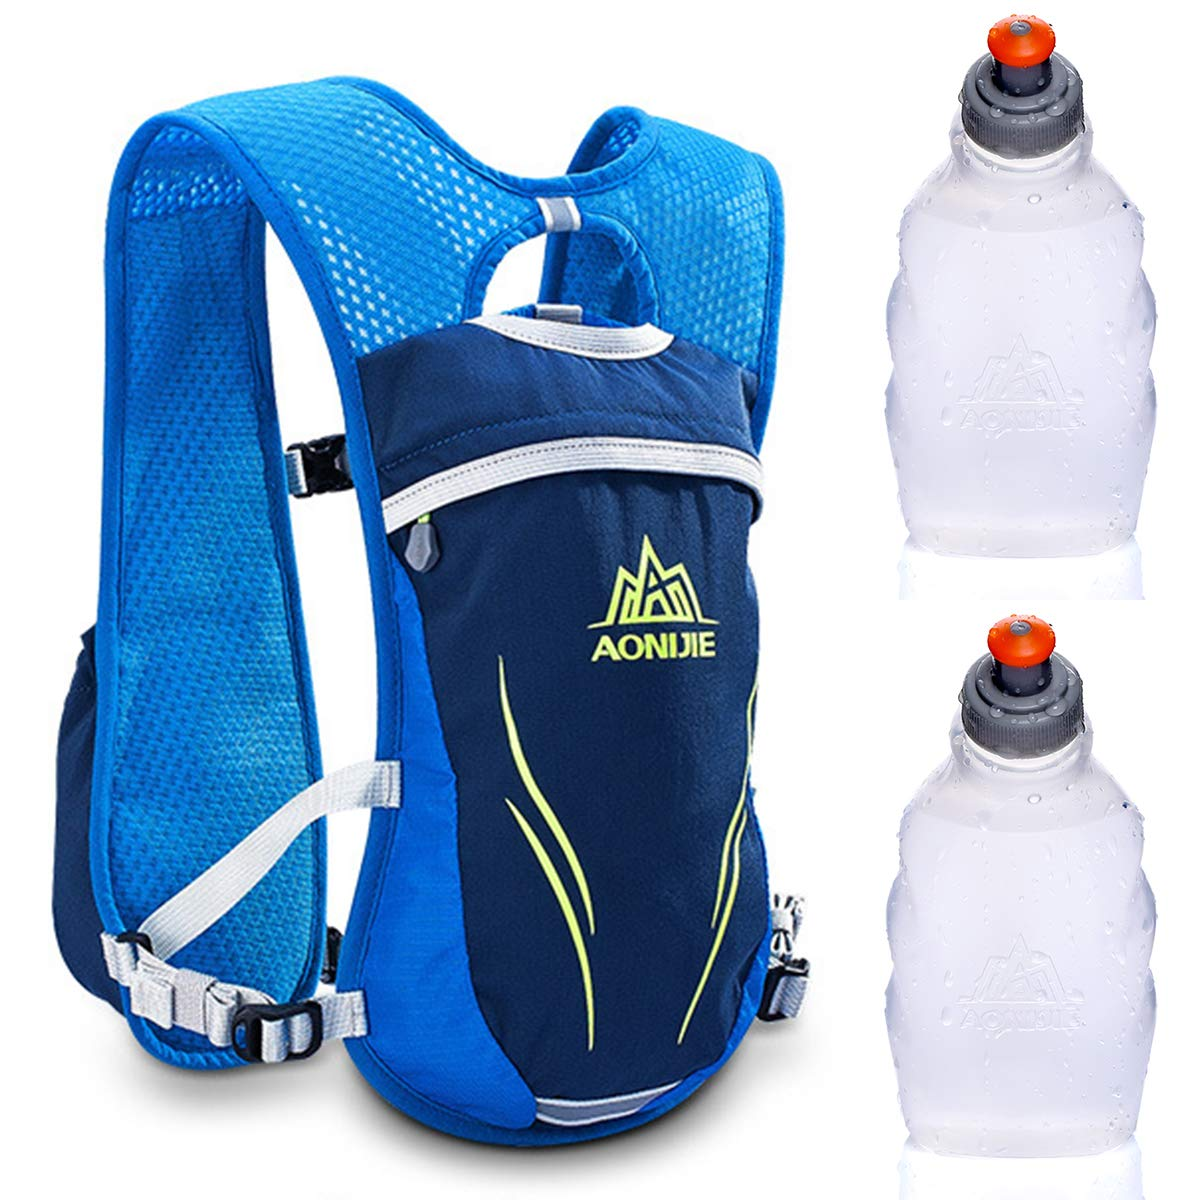 Amazon.com : Tianhaik Hydration Pack Backpack 5.5L Outdoors Mochilas Trail Marathoner Running Race Hydration Vest+with Bottle : Sports & Outdoors